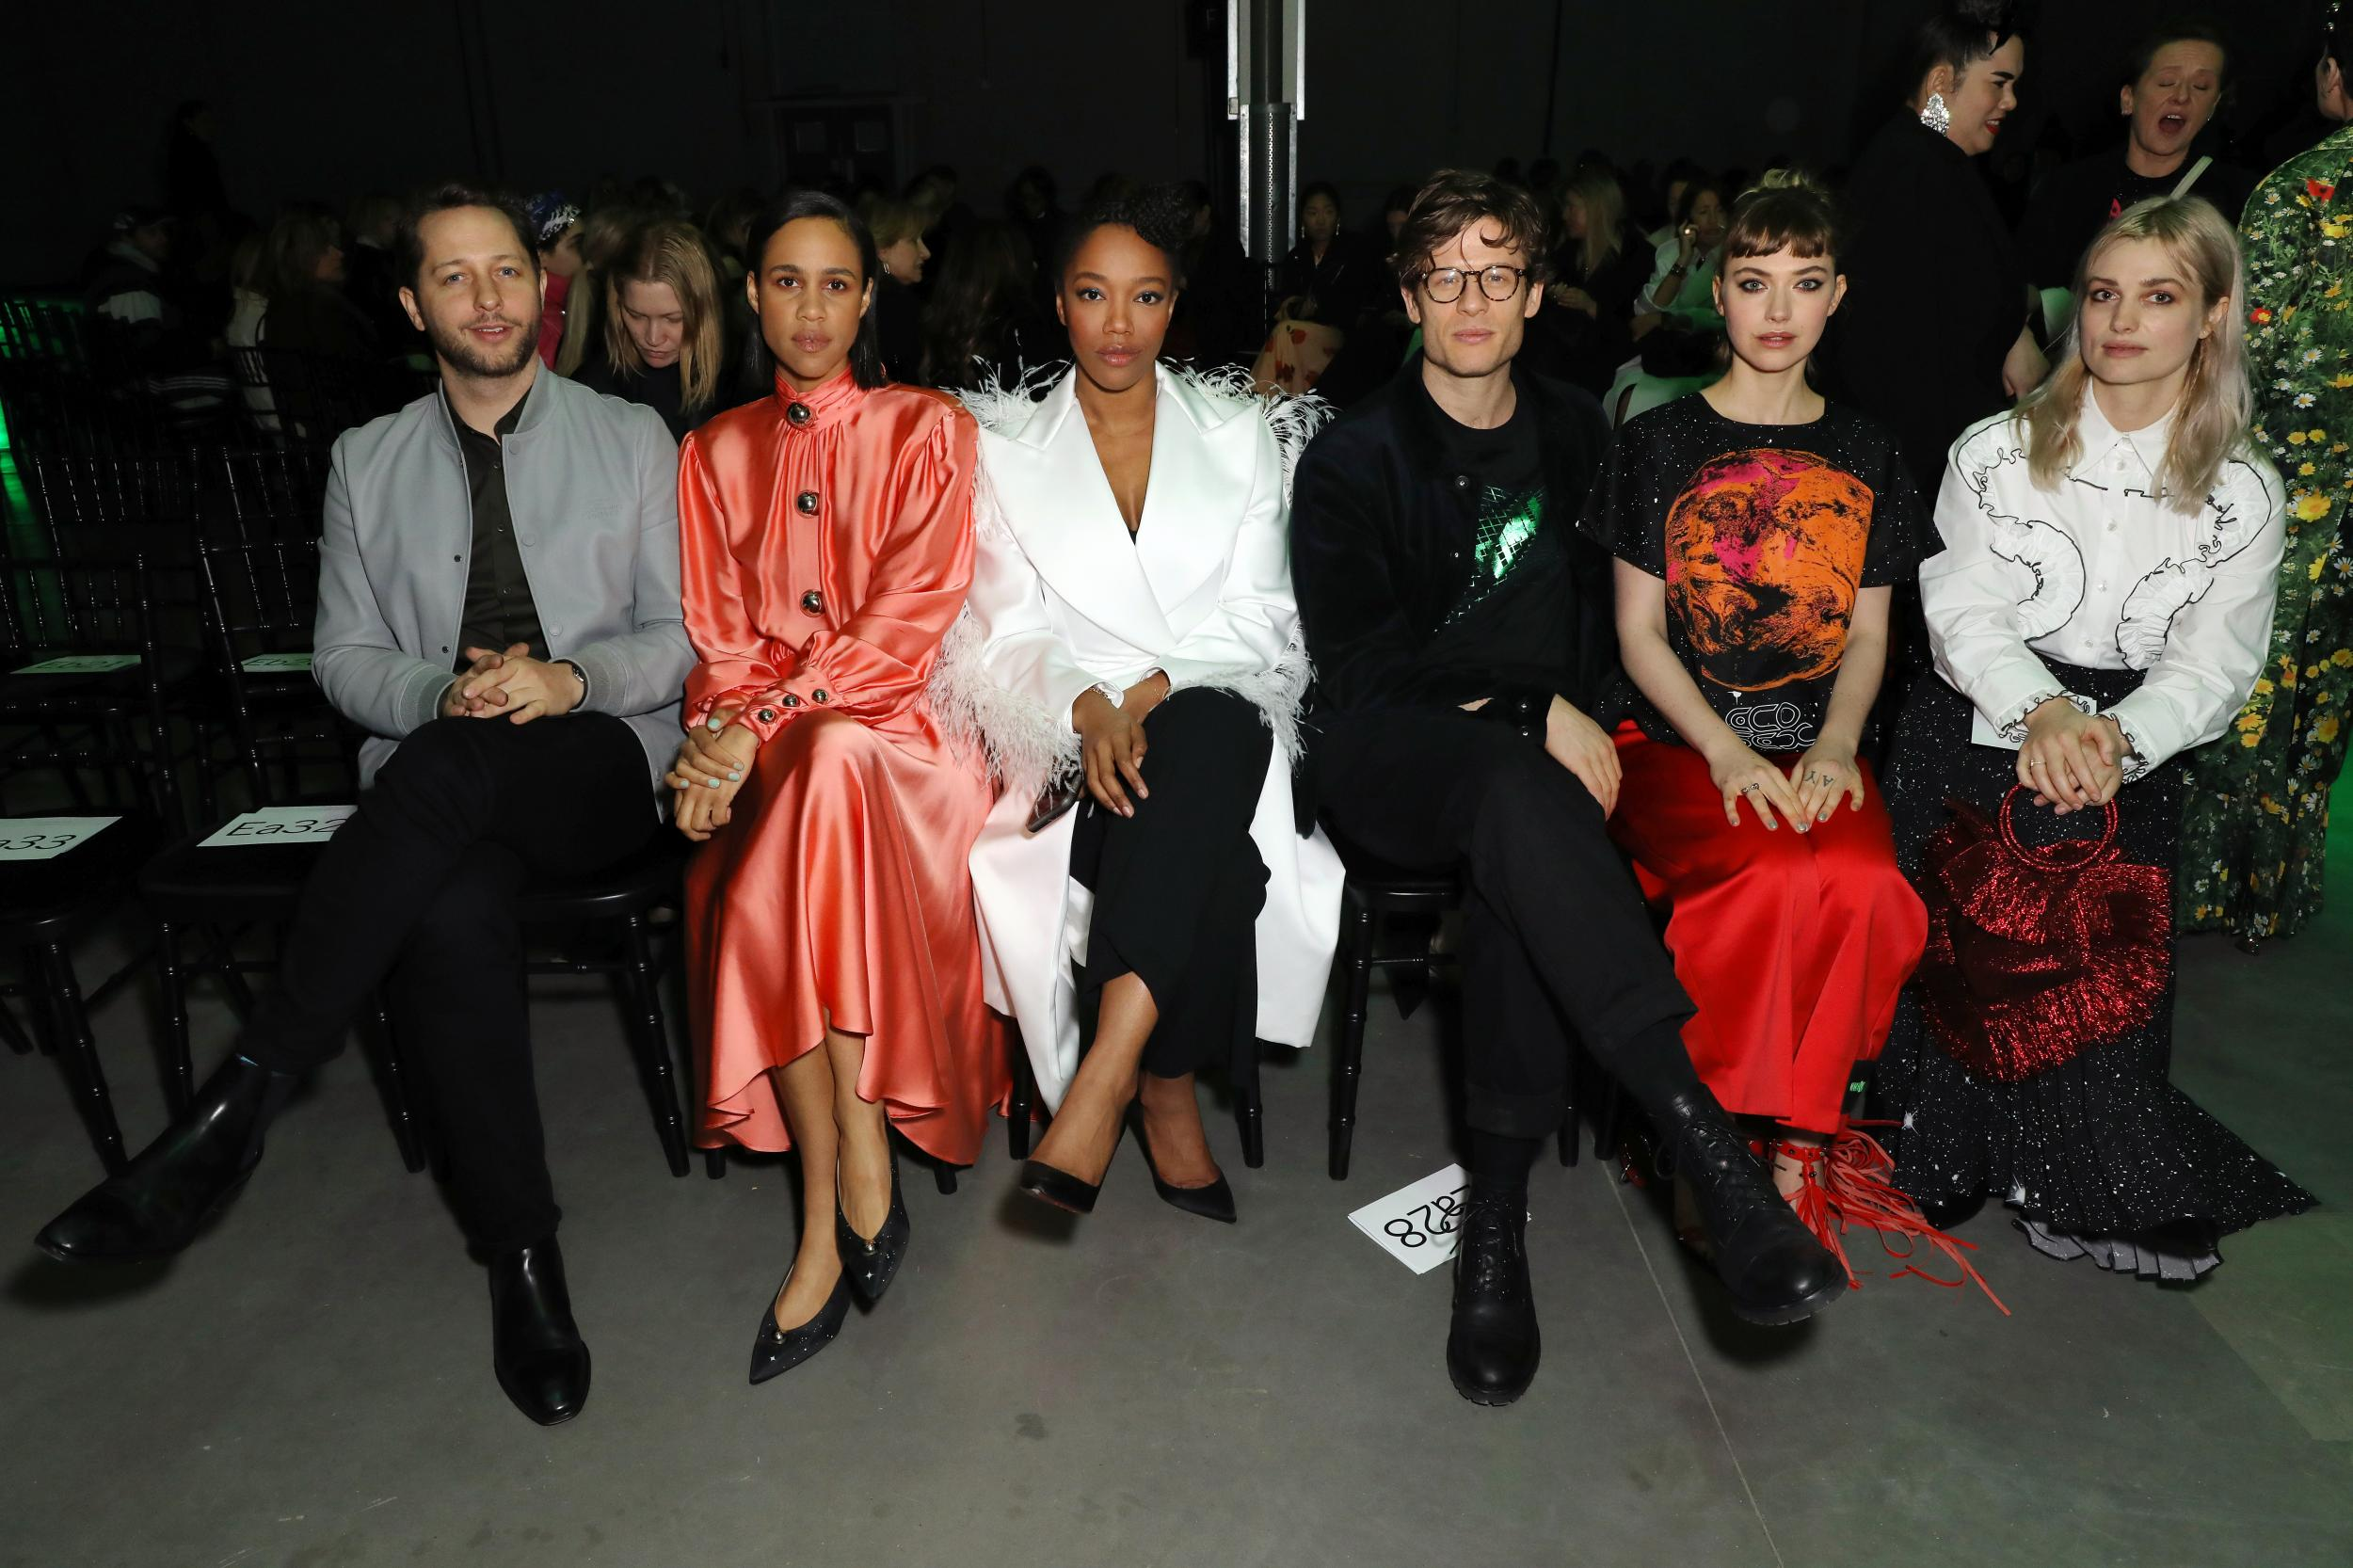 Derek Blasberg, Zawe Ashton, Naomi Ackie, James Norton, Imogen Poots and Alison Sudol